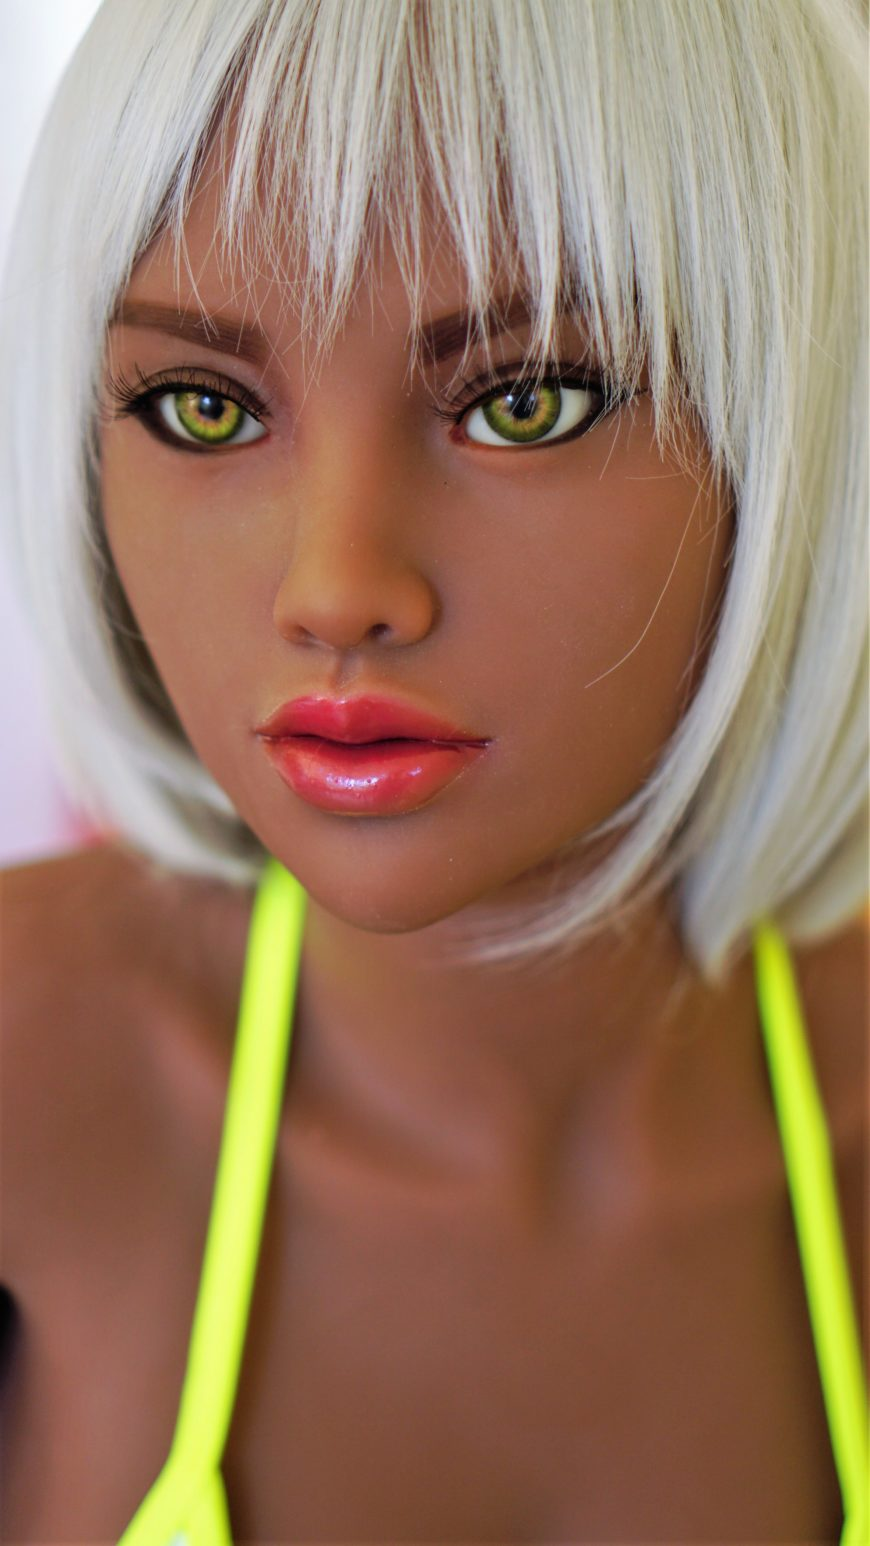 Gilly-Sex-Doll-from-Dirty-Knights-Sex-Dolls-posing-naked-1 (13)